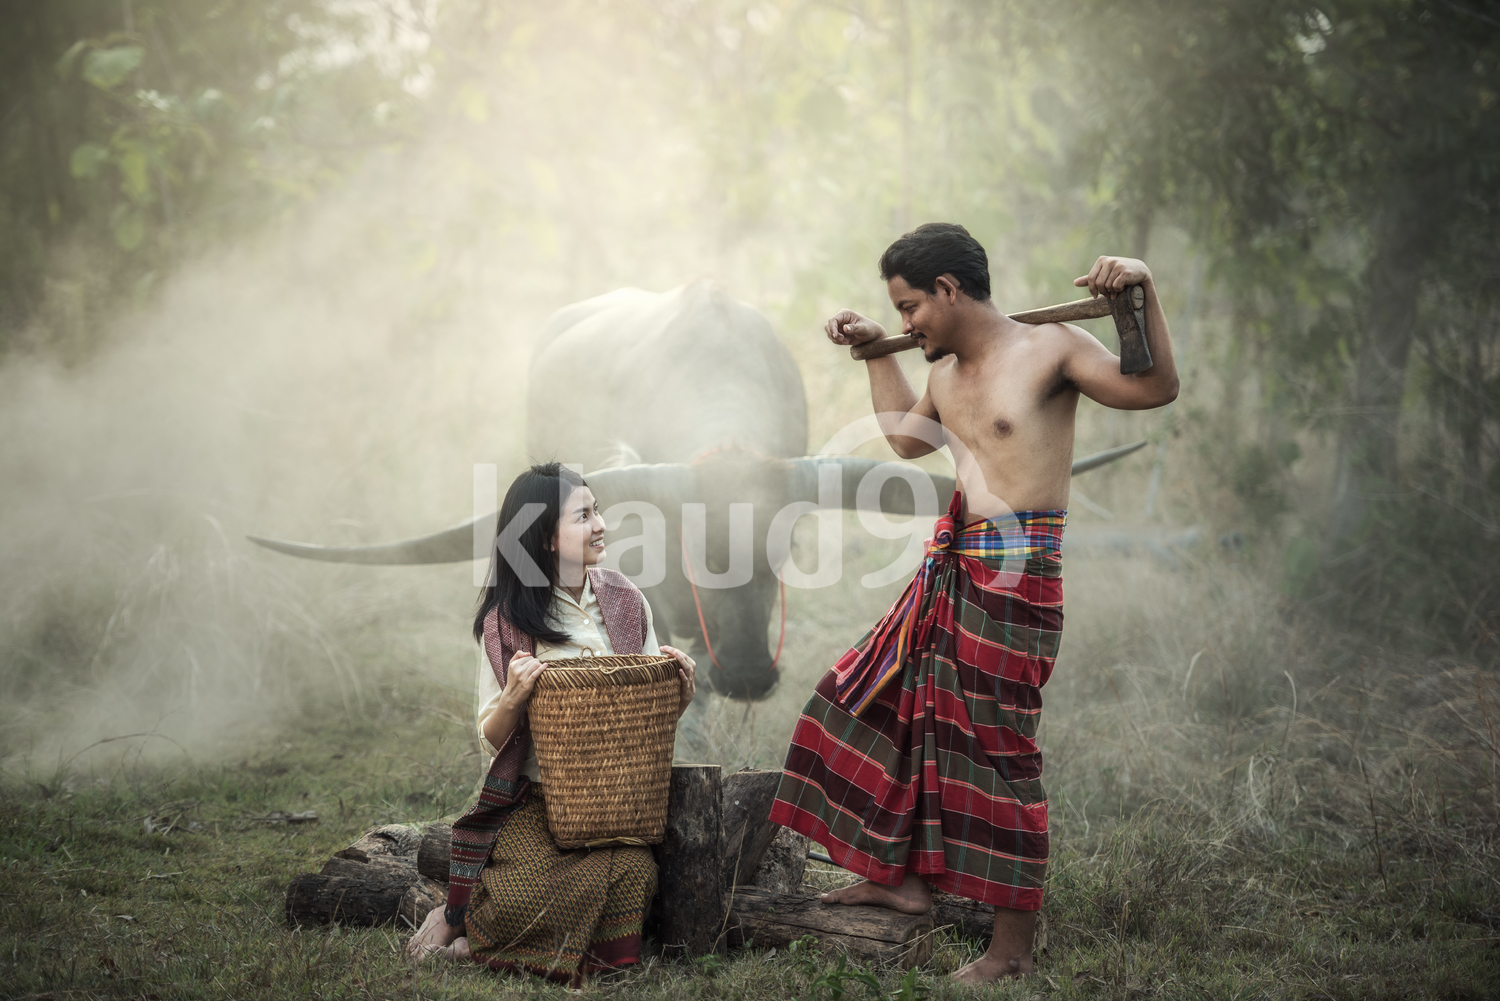 Couple farmer in Thailand